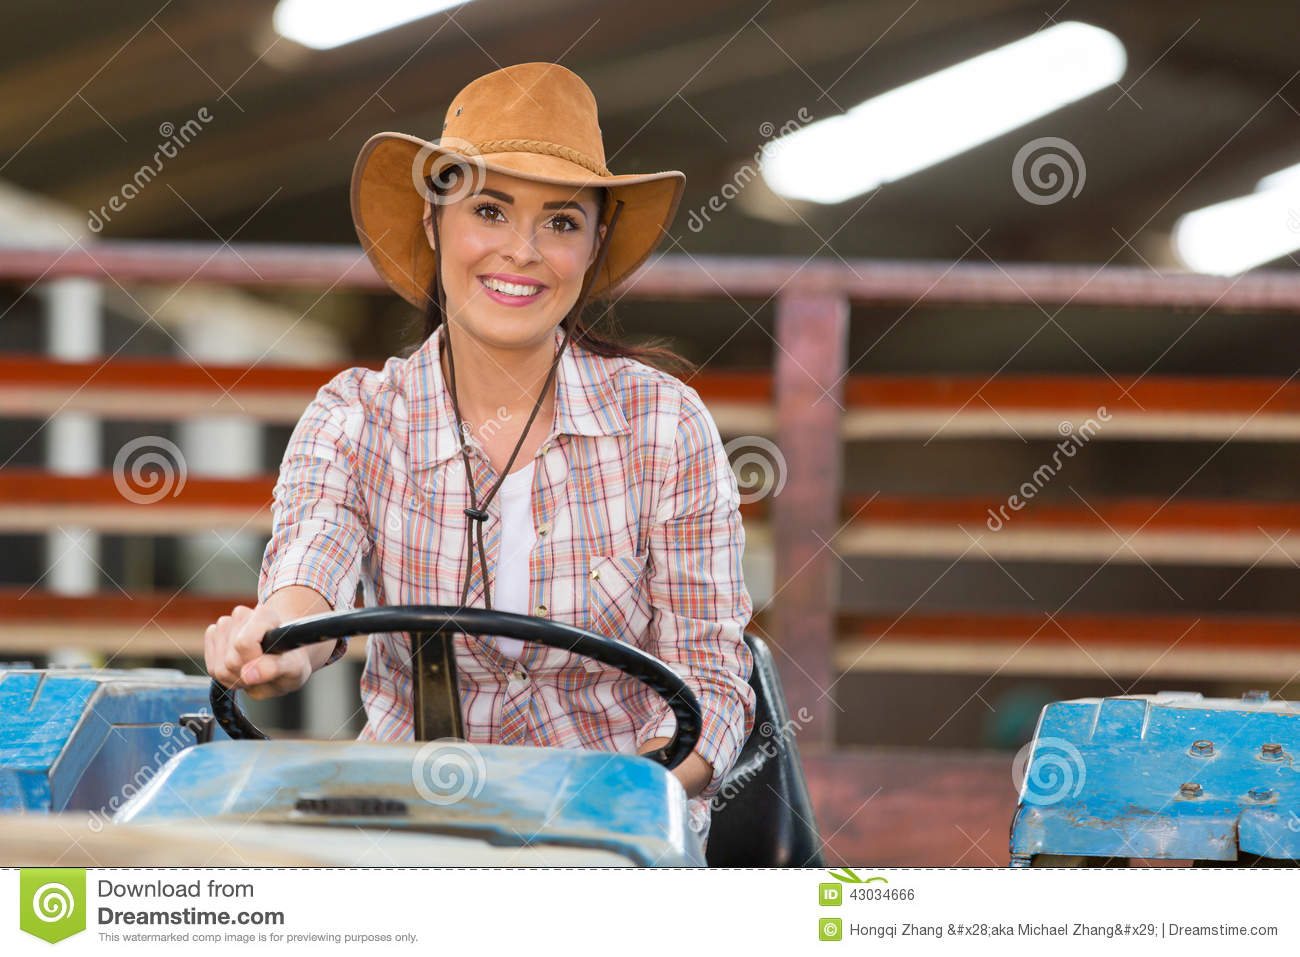 Female Farmer Driving Tractor Stock Photo - Image: 43034666